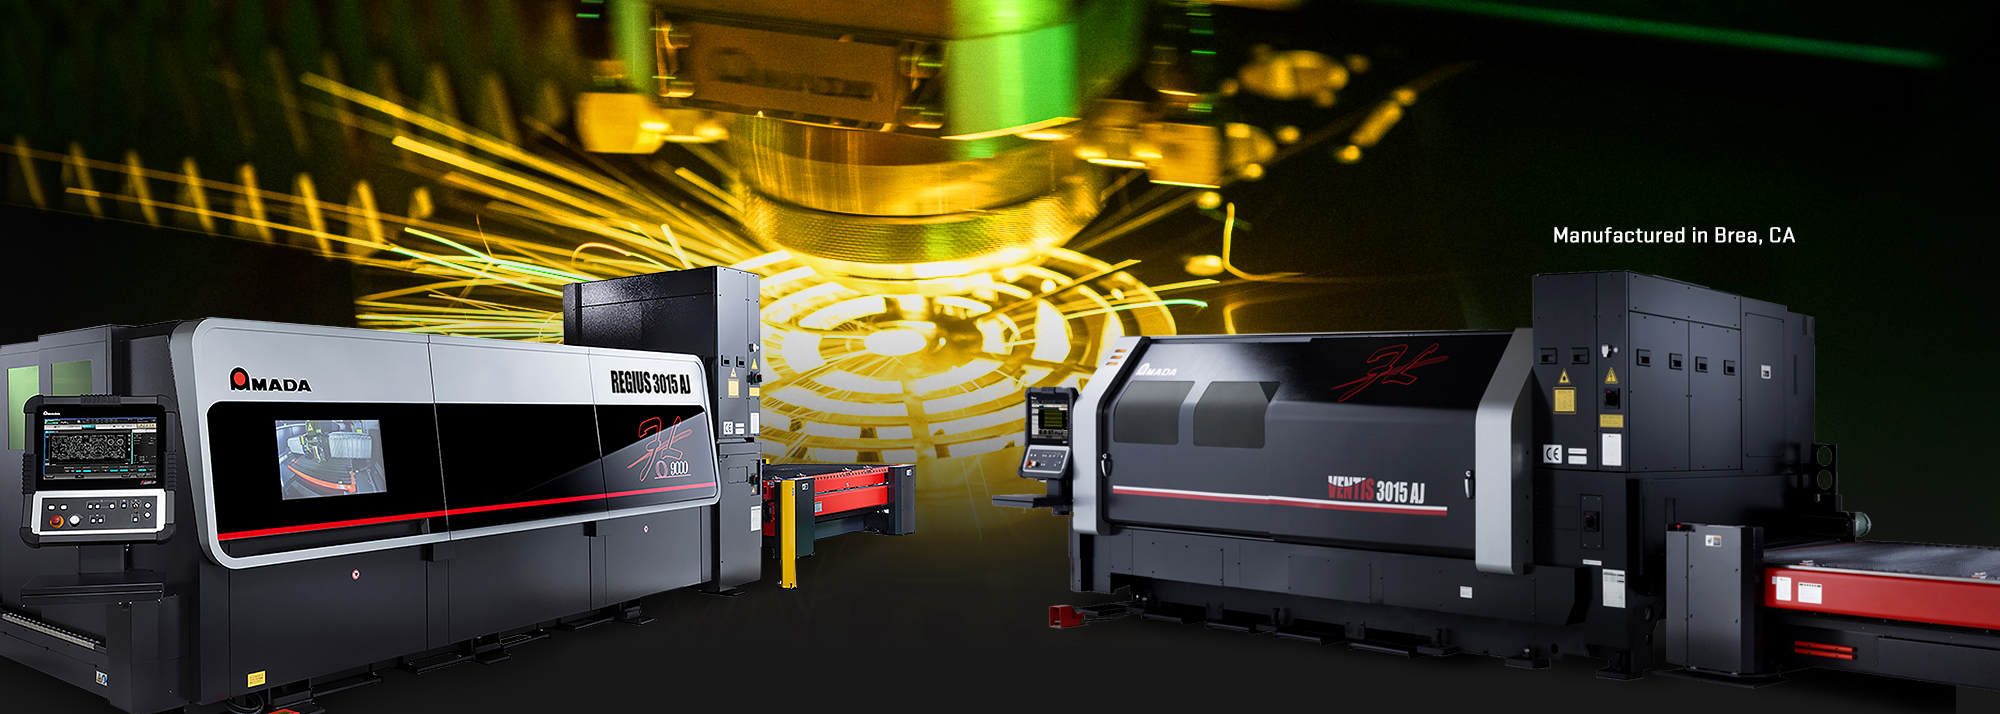 ENSIS Series - Fiber Laser Cutting System | <a href='laser'>More Info</a>